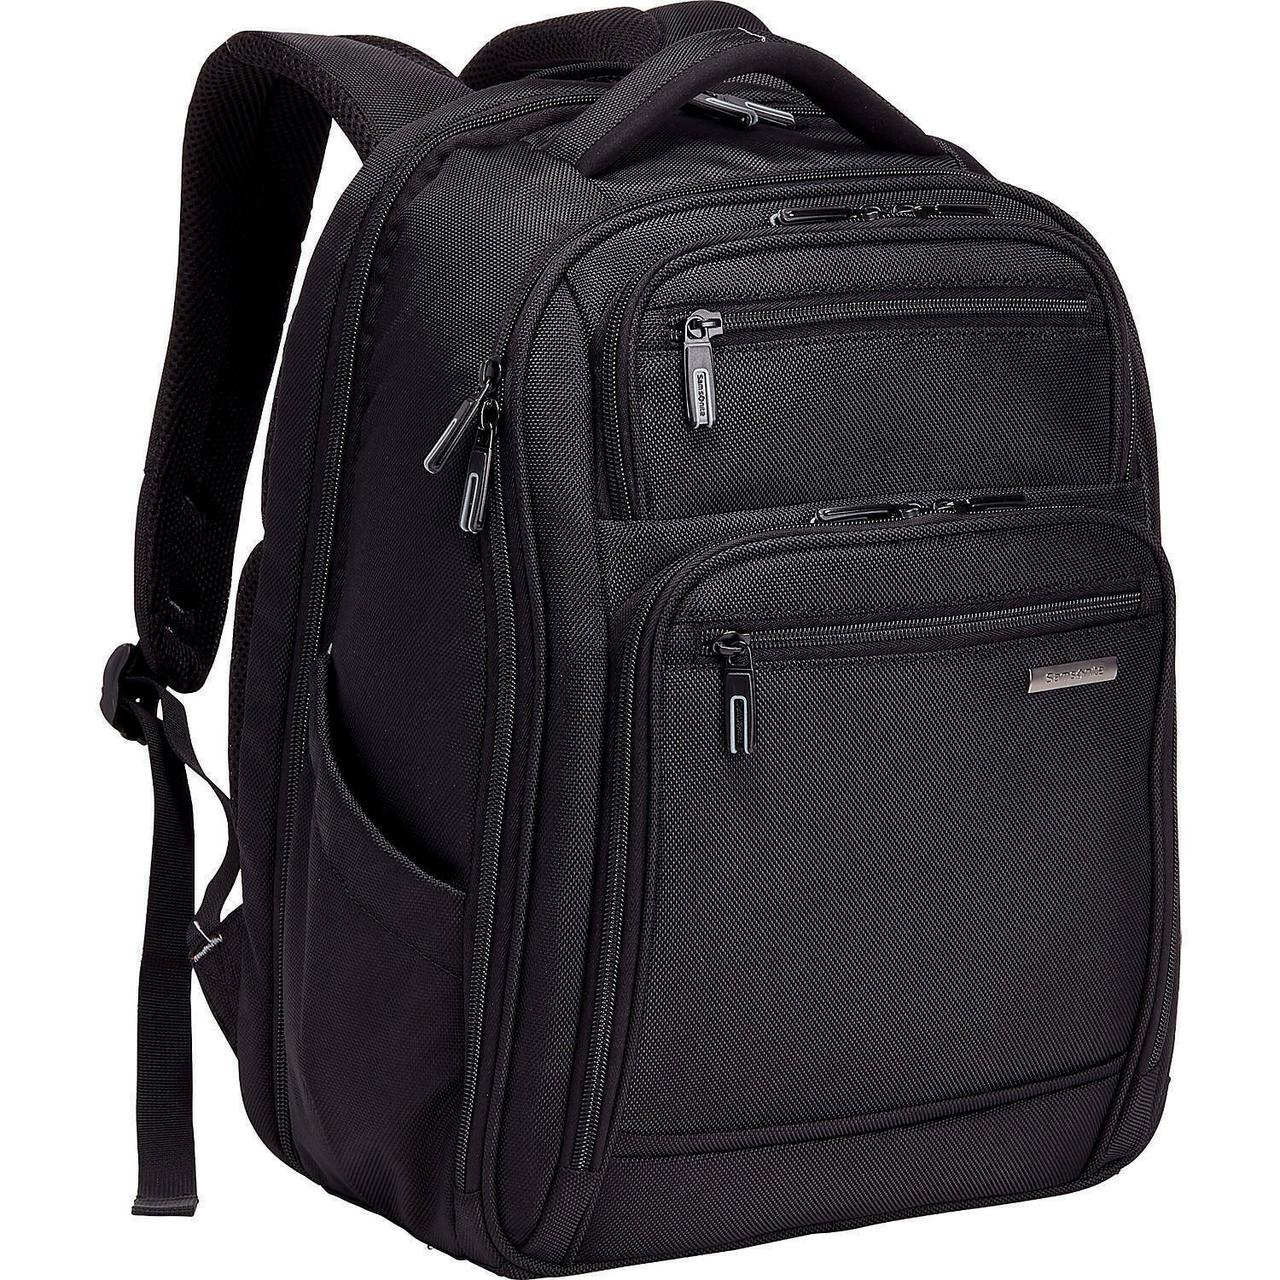 Рюкзак для ноутбука Samsonite Executive Series Laptop Backpack